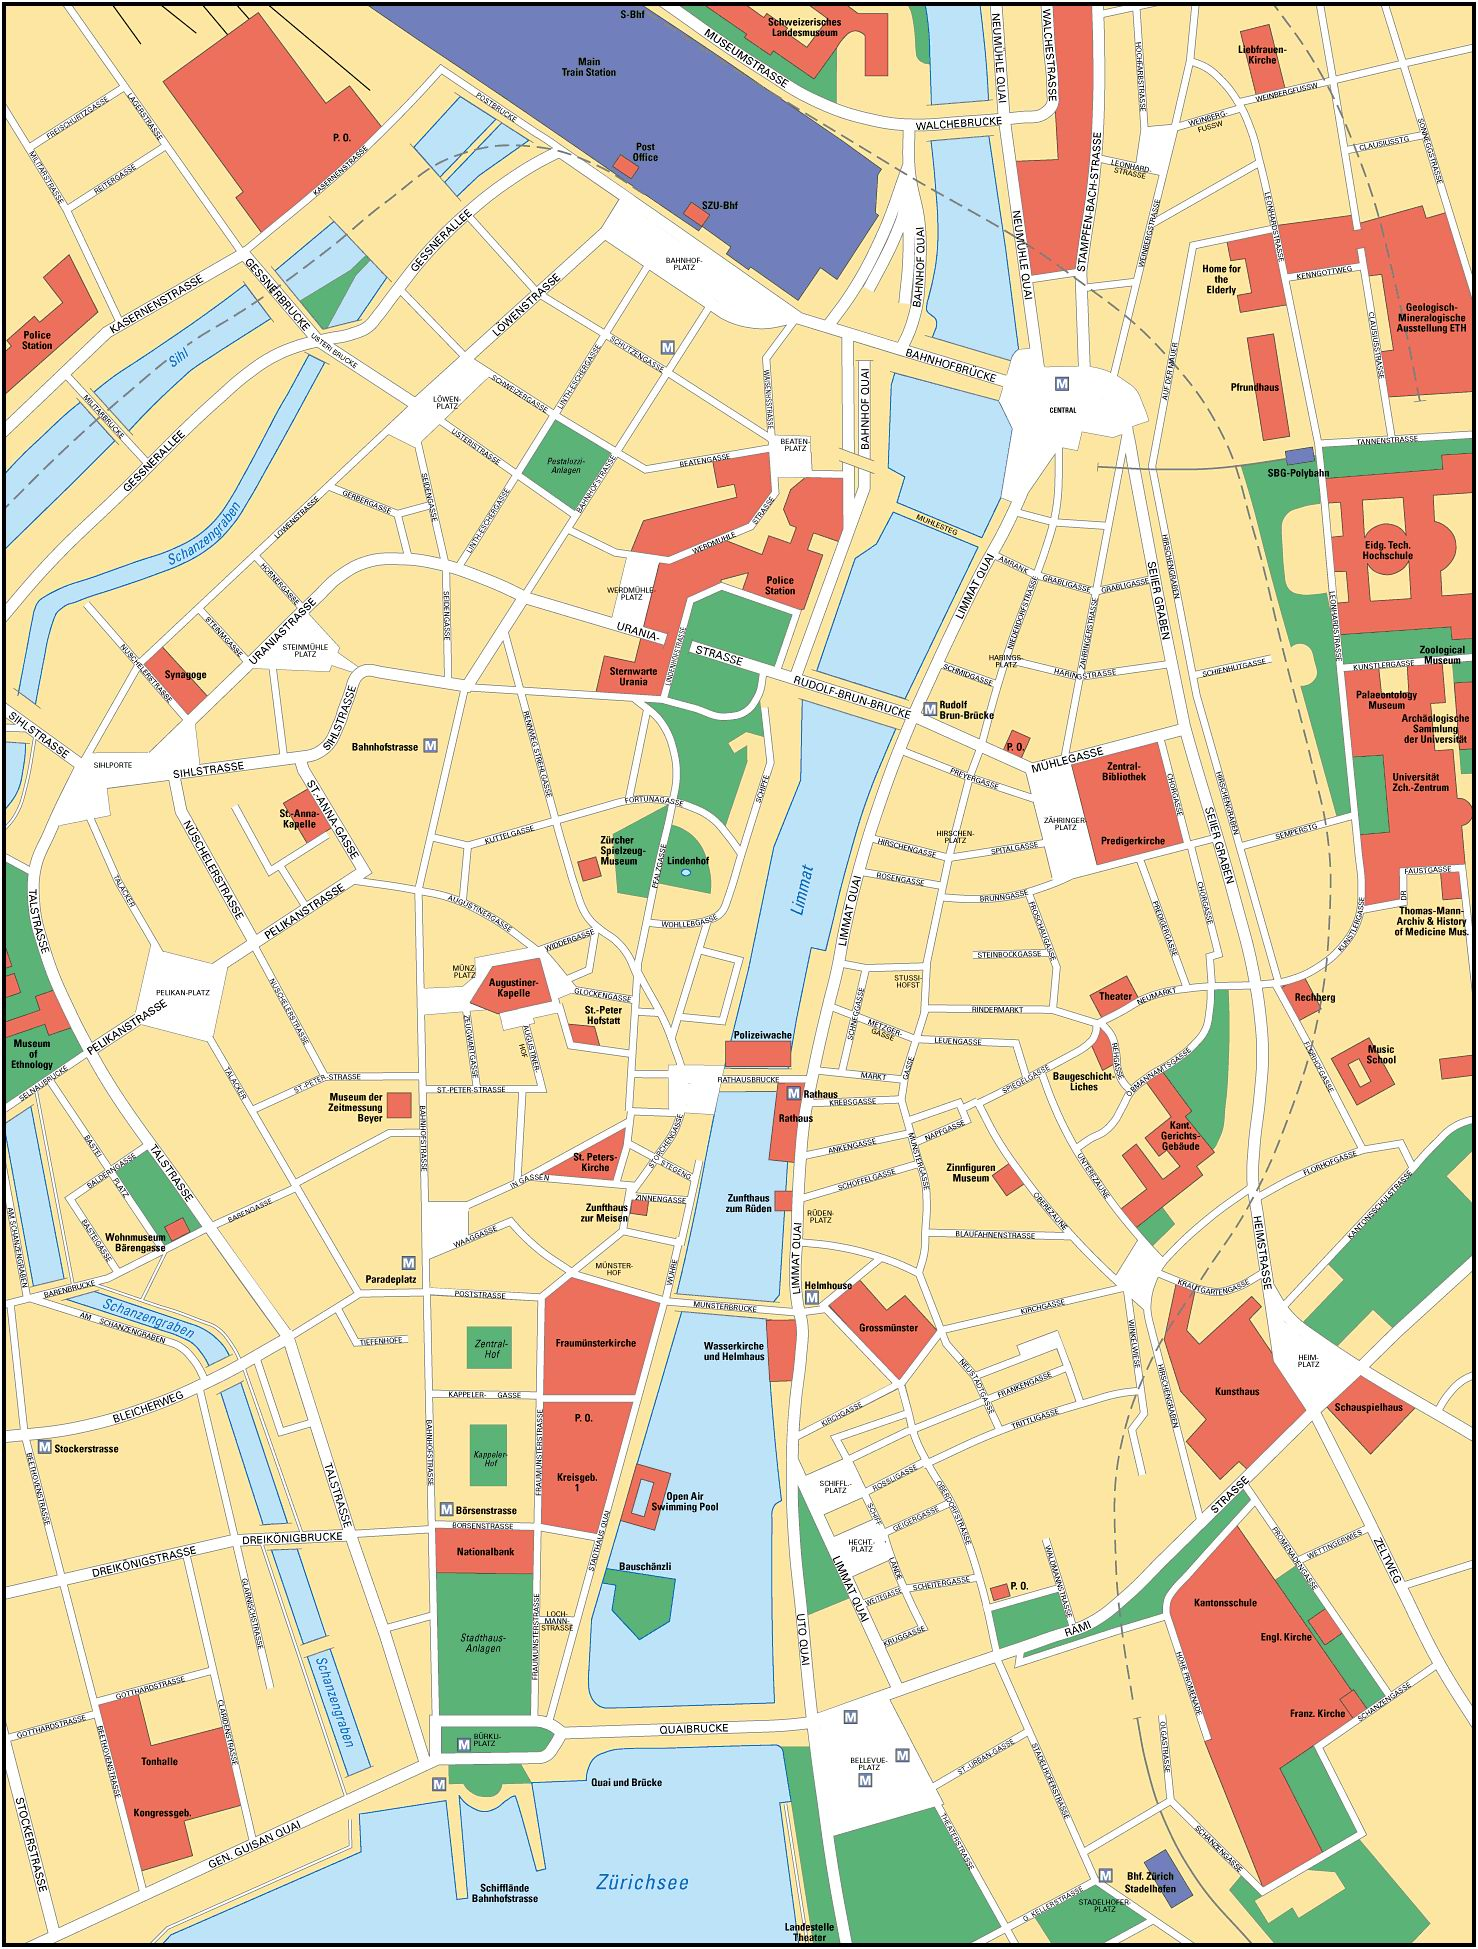 Zurich Switzerland Tourist Map Zurich mappery – Zurich Tourist Map